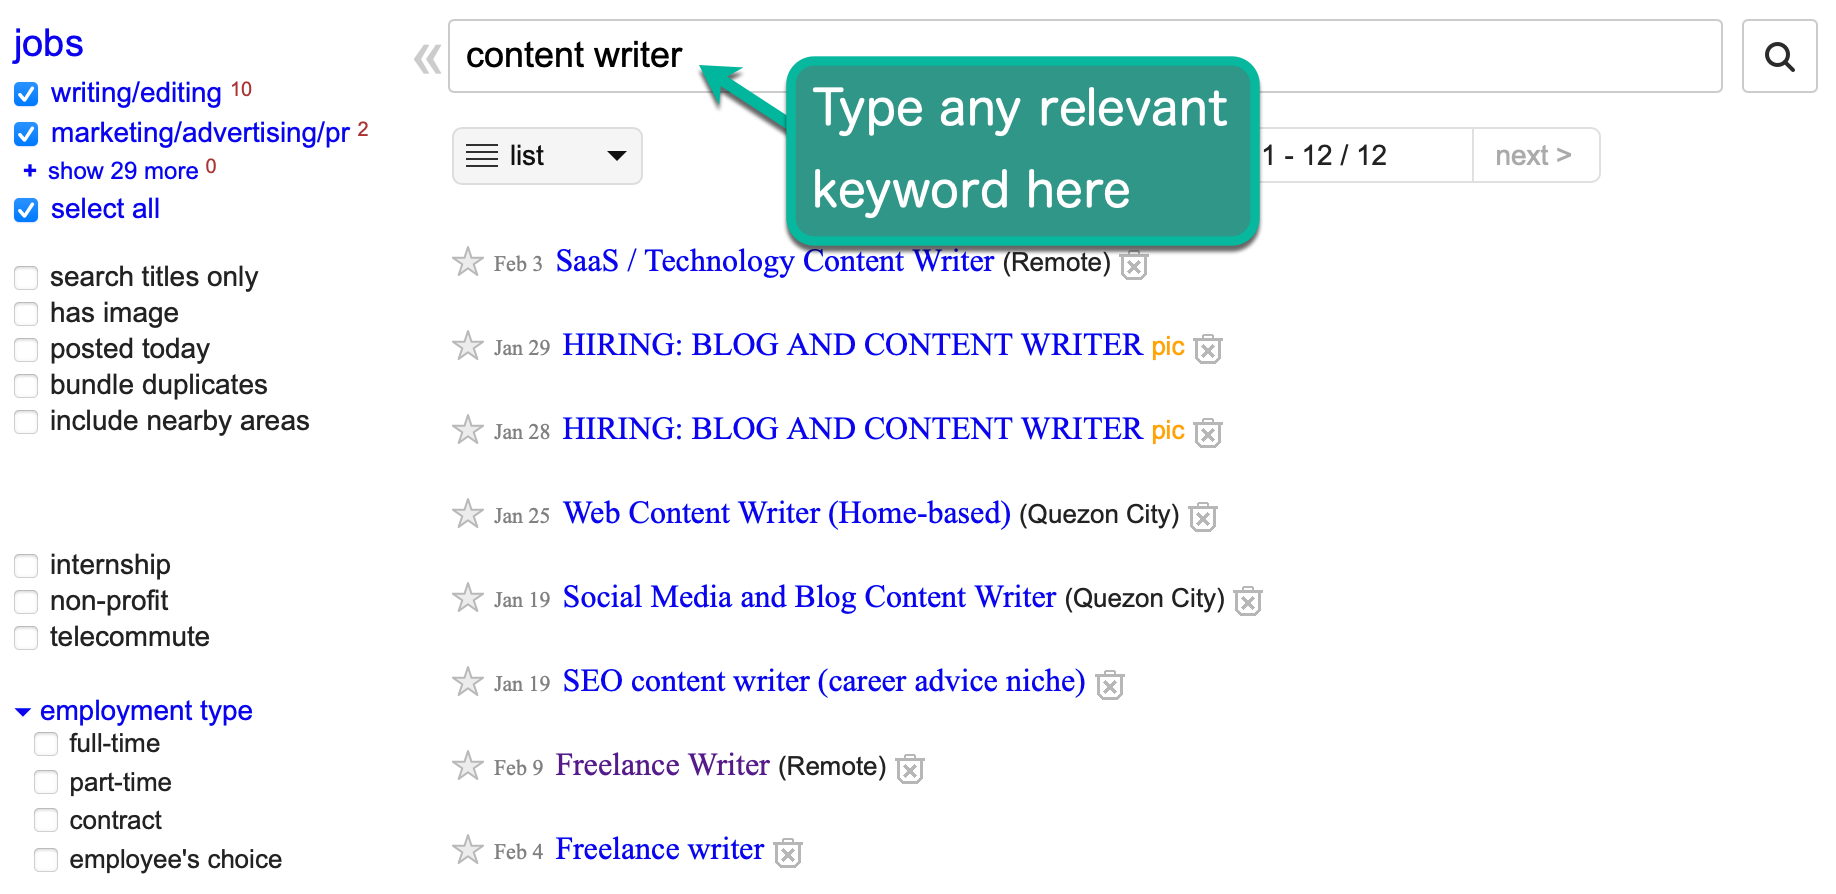 Craigslist Listings for Content Writer